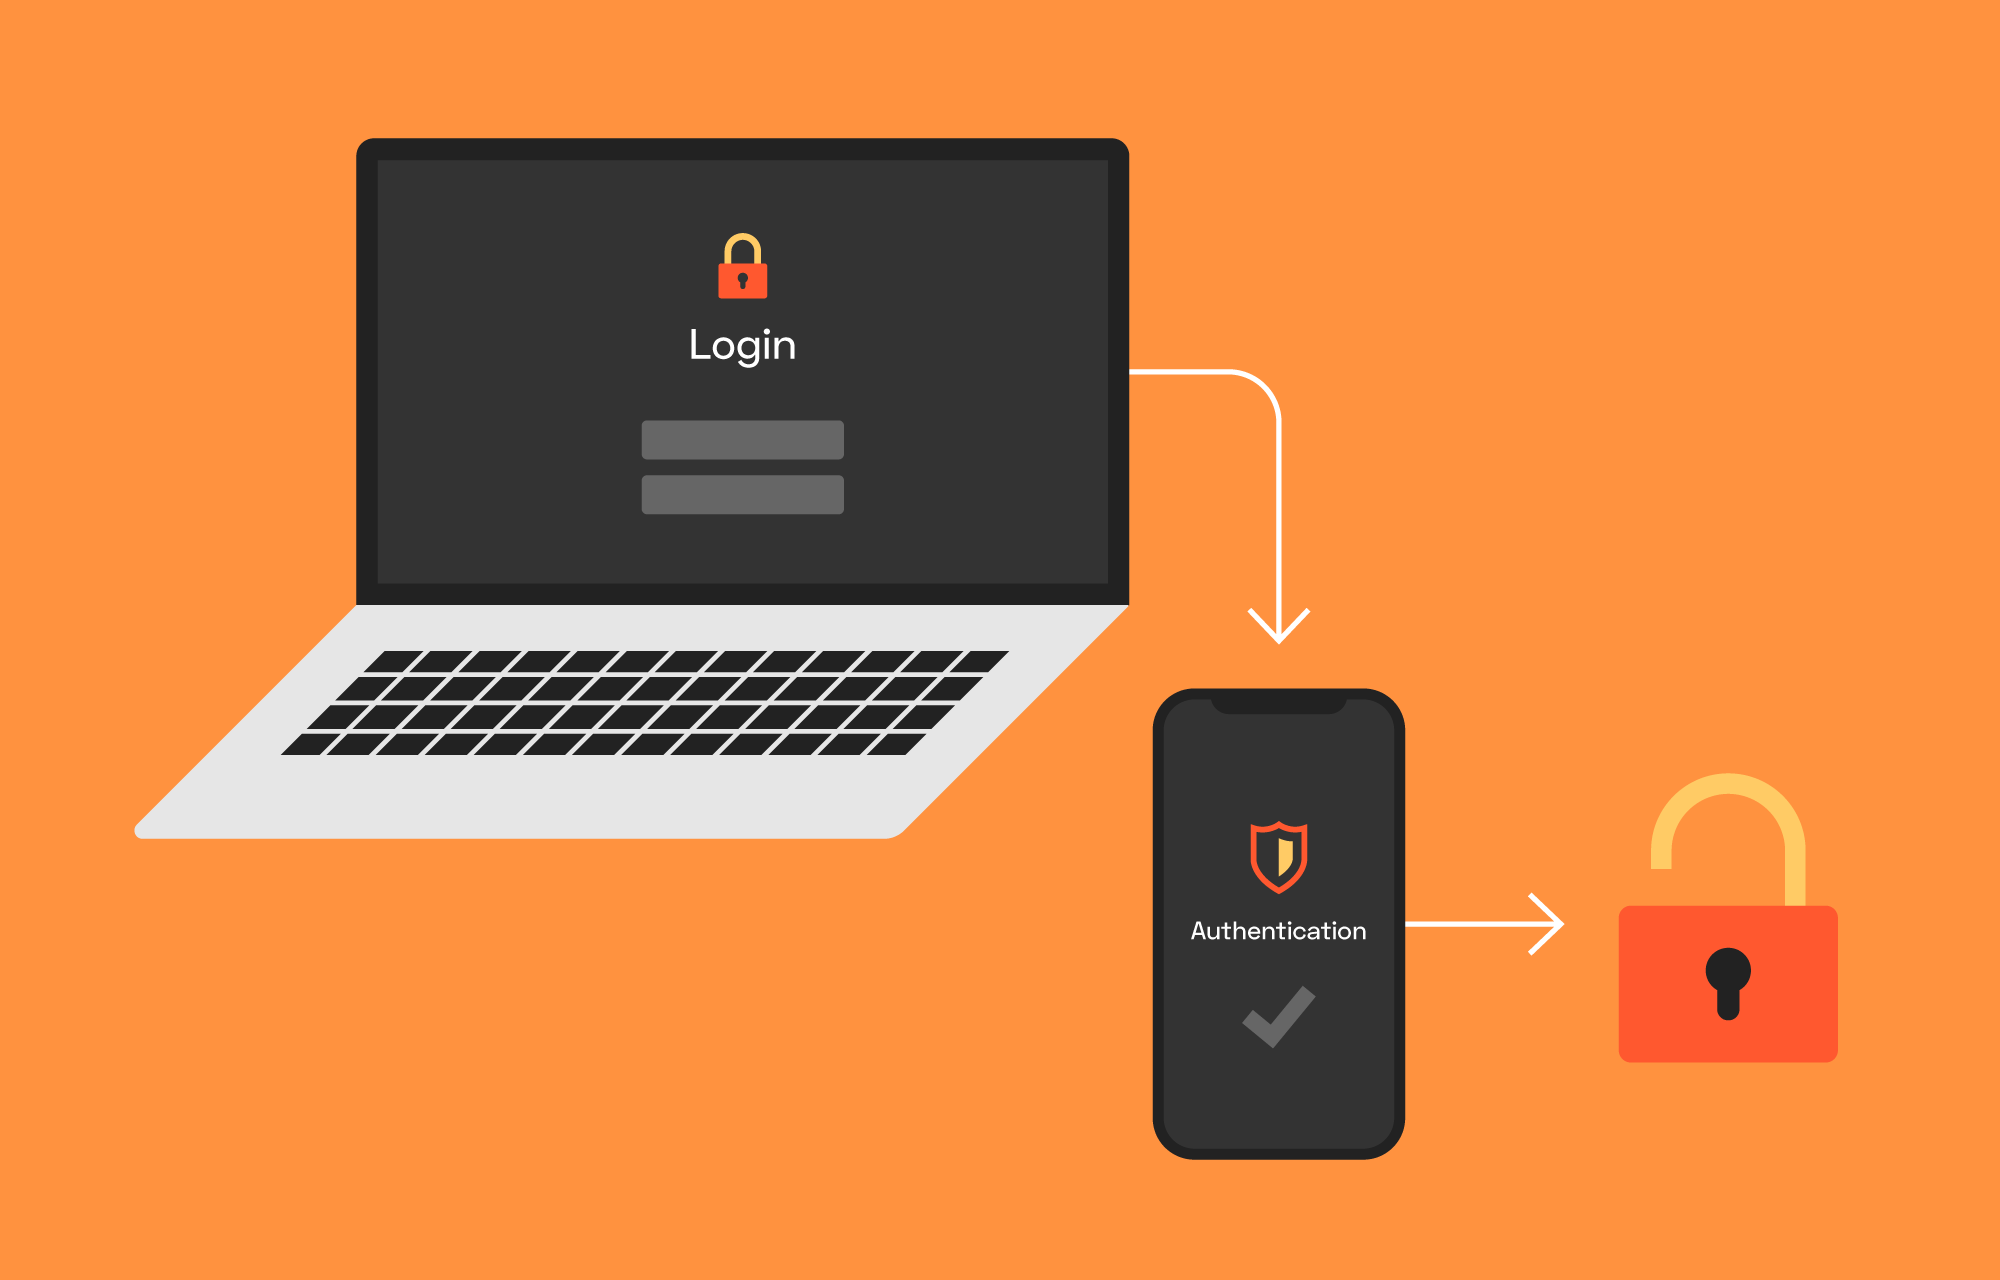 Make your workplace more secure with 2-factor authentication